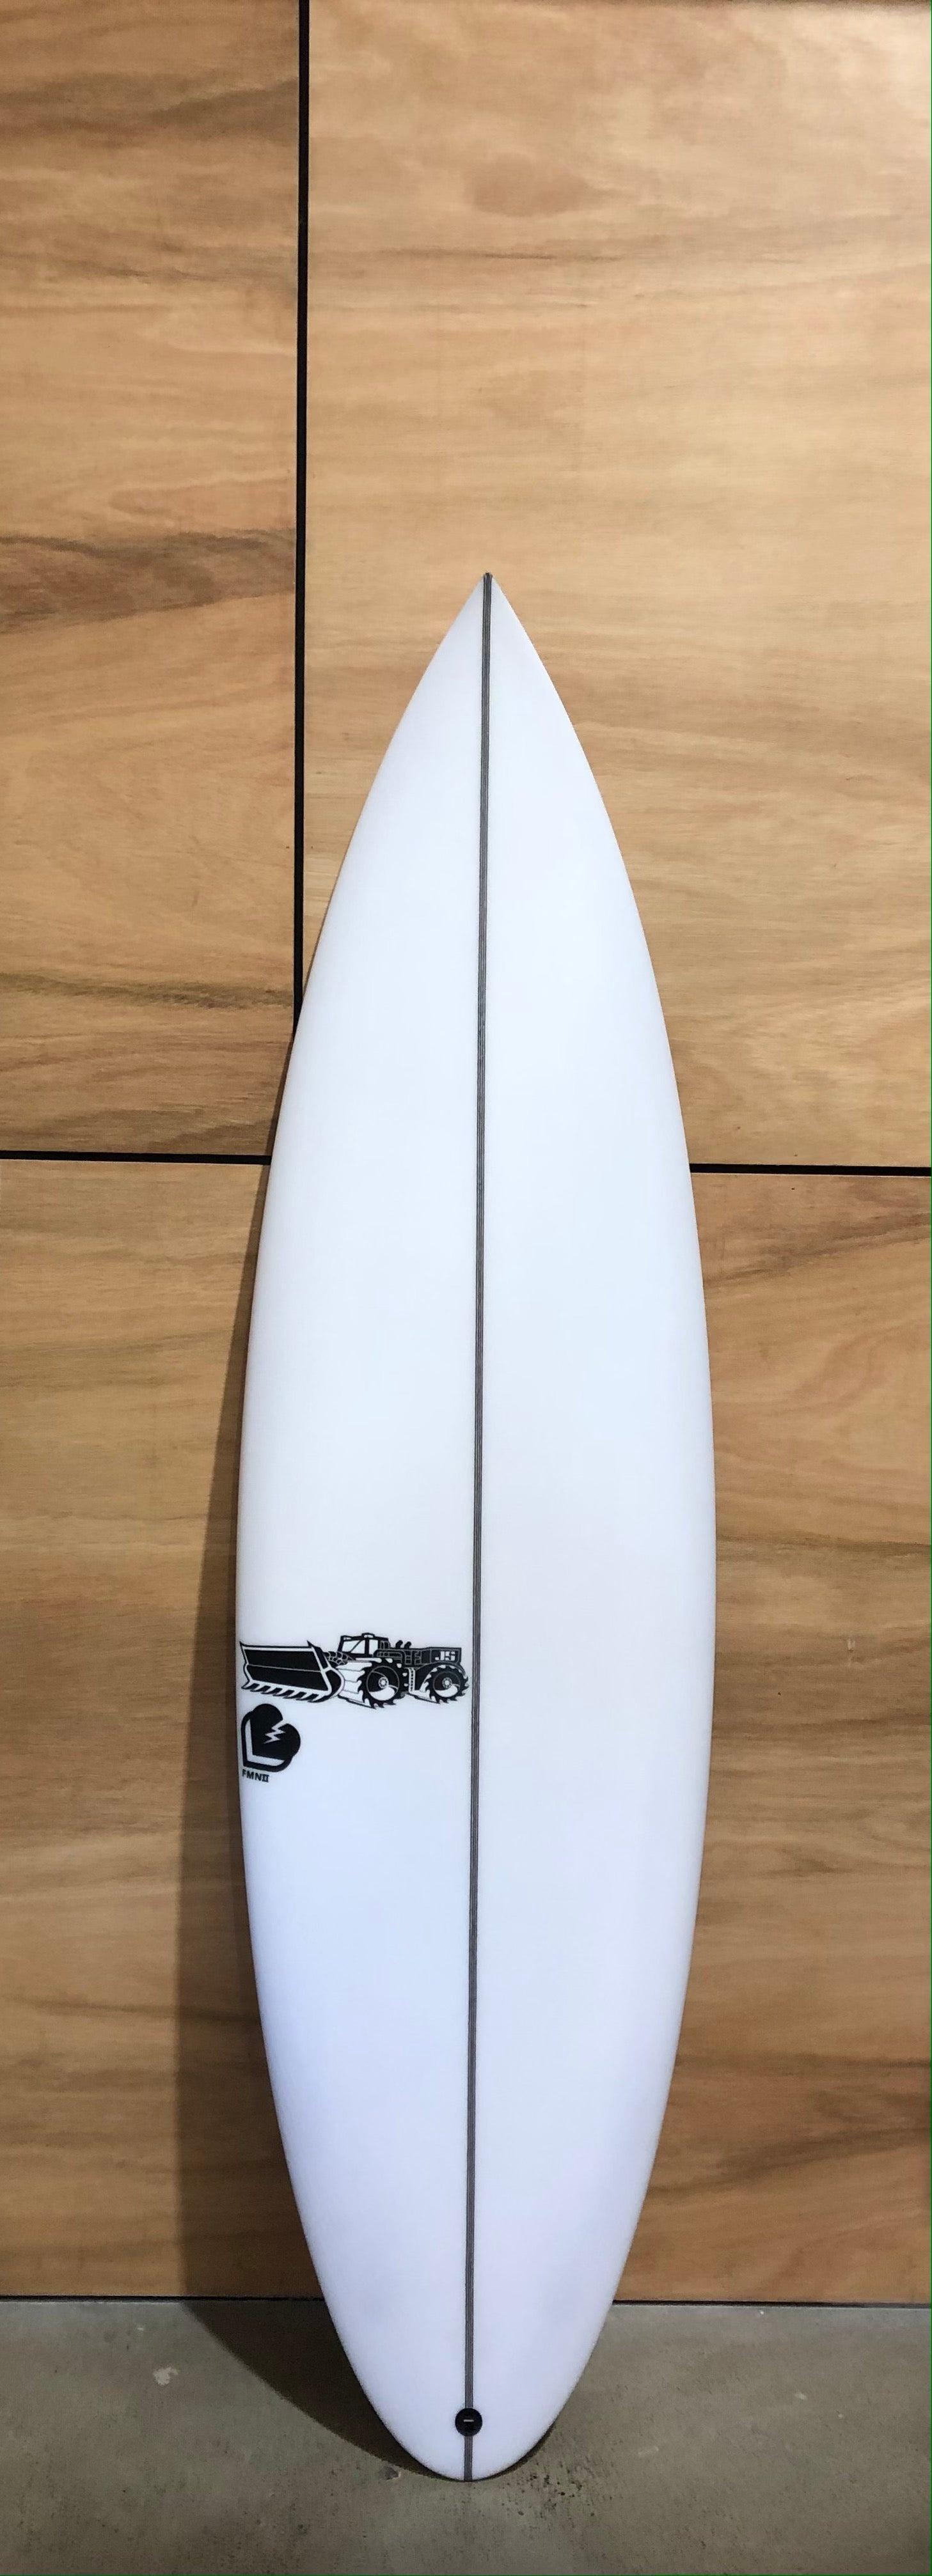 JS Forget Me Not 2 (round tail) - Board Store JSSurfboard